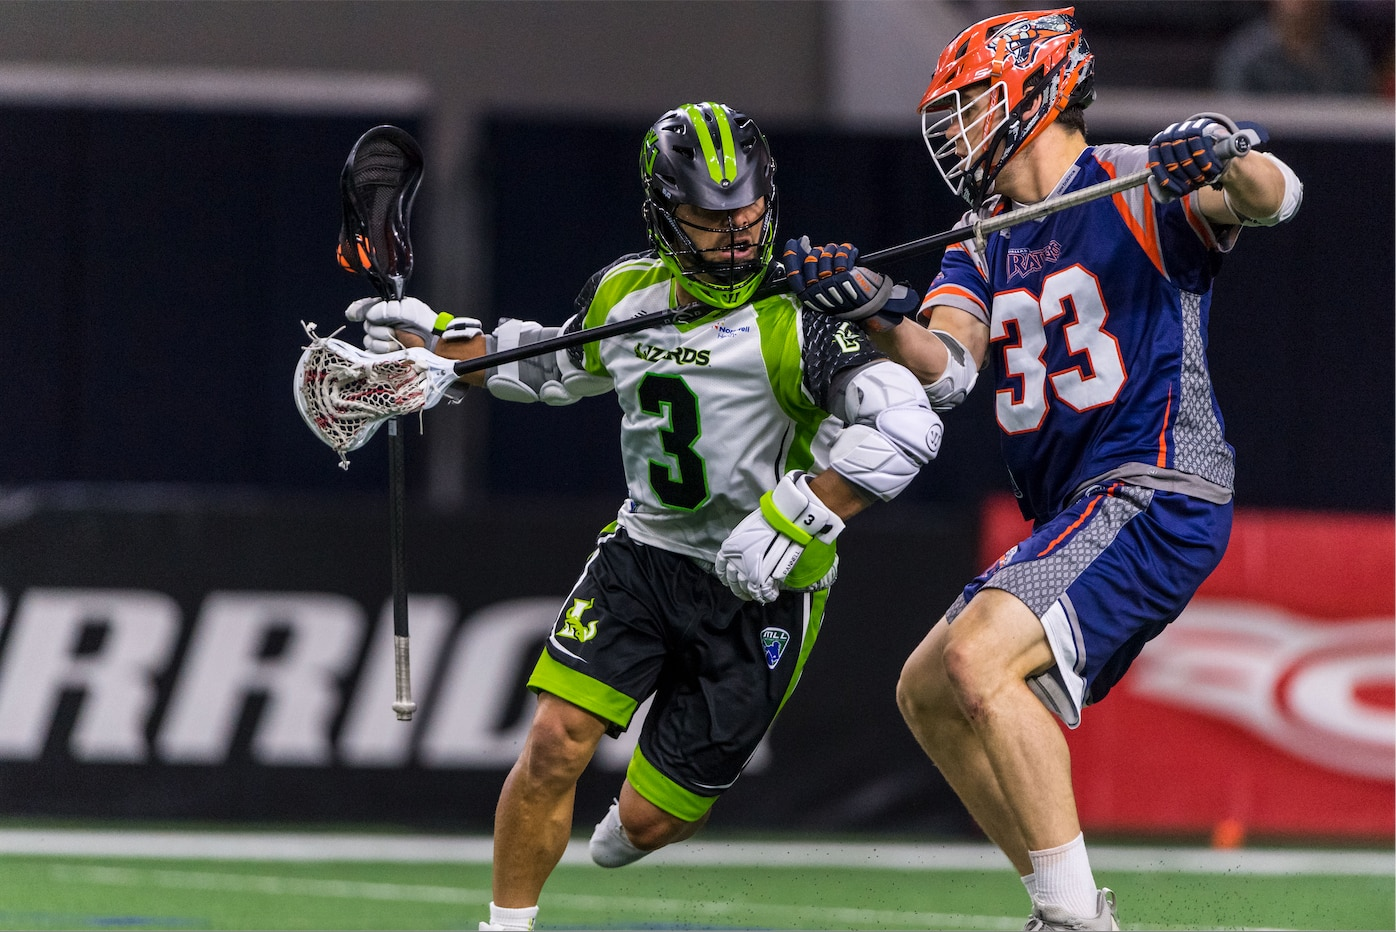 2018 LSN Awards Pro Outdoor Player Of The Year